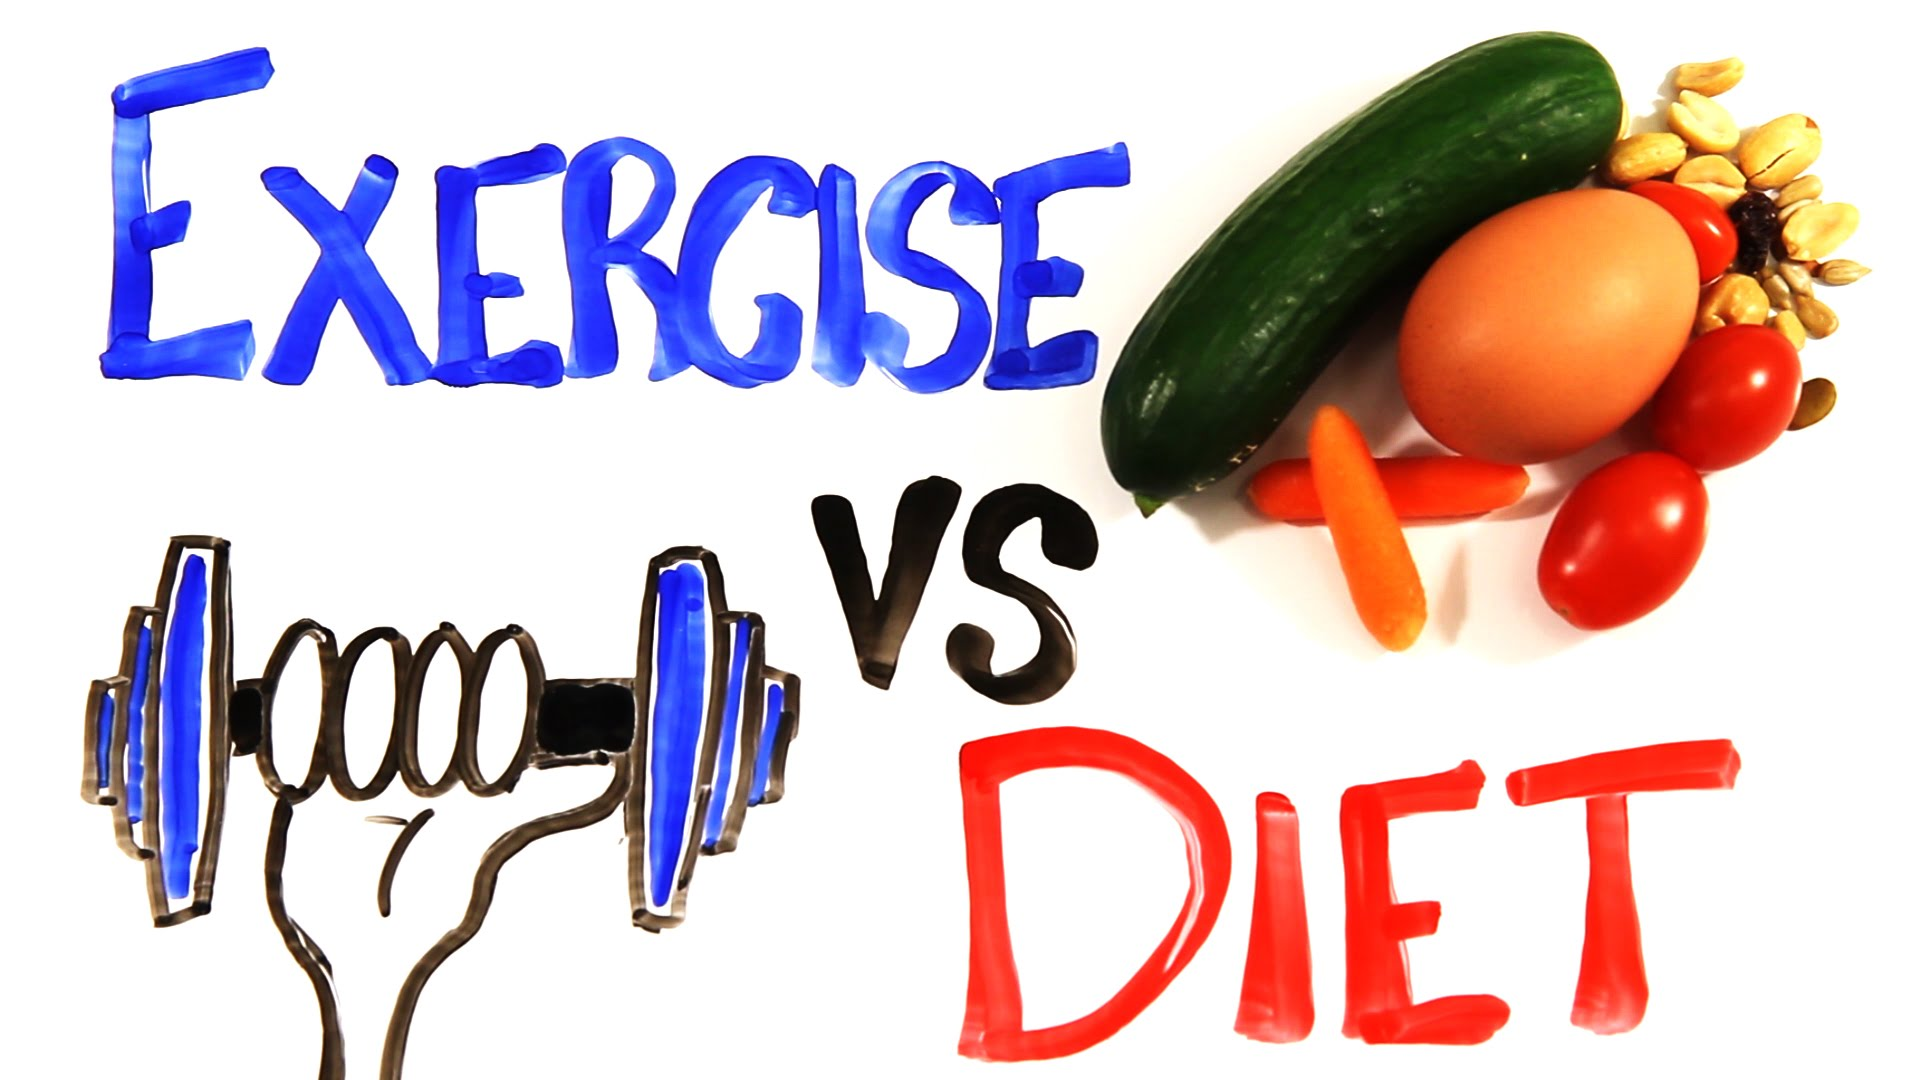 A Logical Explanation Why Diet Plays a Bigger Role Than Exercise in Order to Lose Weight